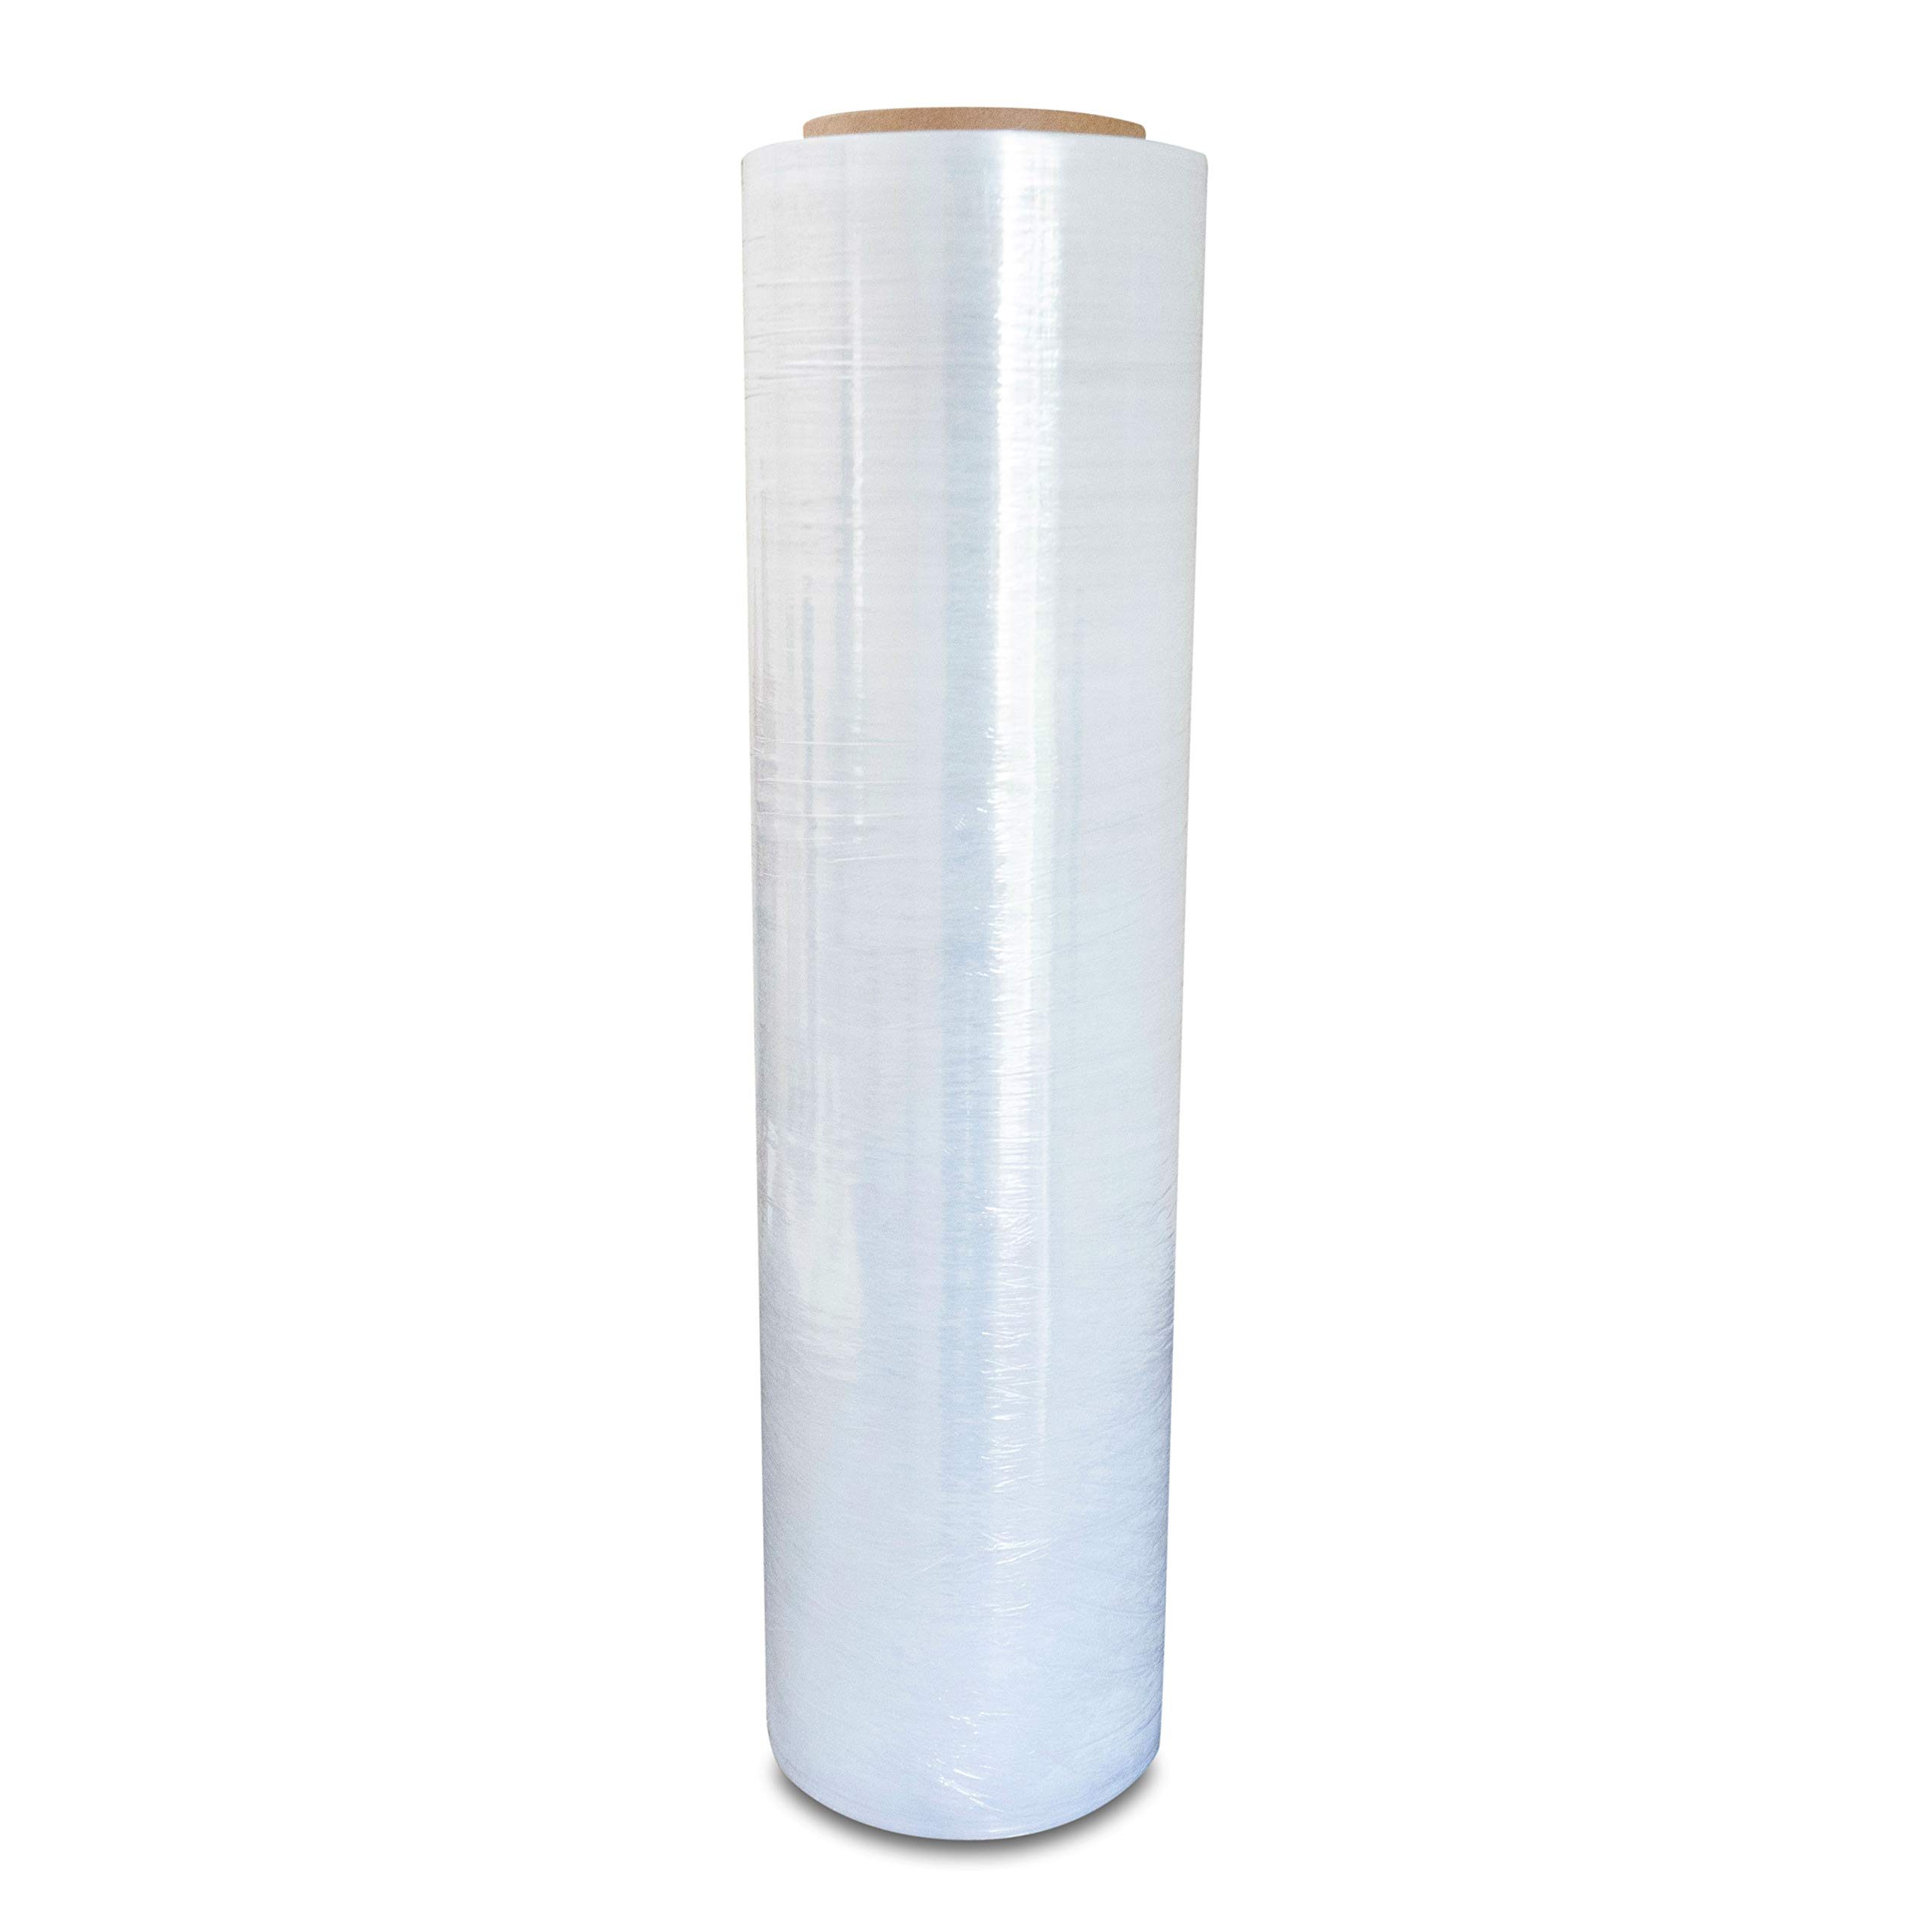 Pack of America Industrial Shrink Wrap | Plastic Stretch Wrapping Film | Packing & Moving Supplies | Pallets, Furniture, Boxes, Shipment Protection | 1 Rolls Clear 18'' x 1100 Foot 3'' Core 80 Gauge